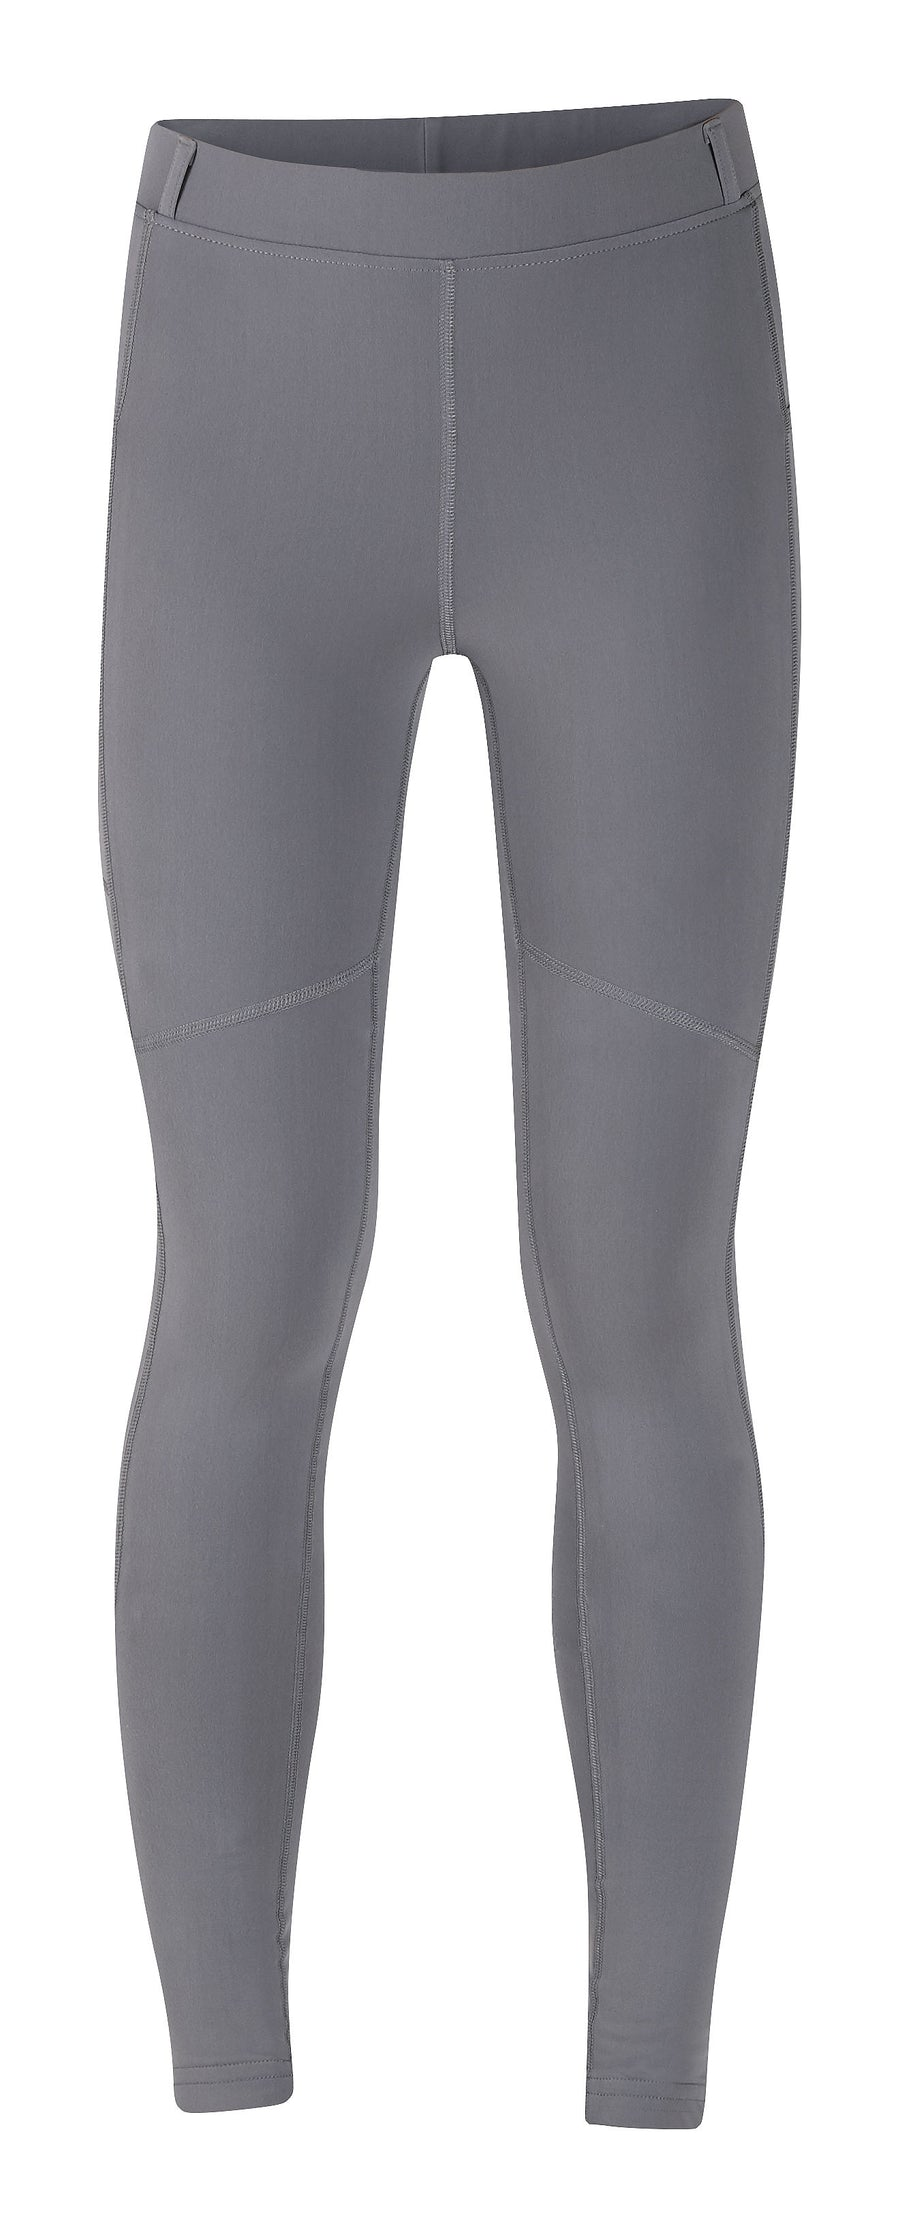 Kids' Ice Fil Tight 2019-Breeches-Kerrits-XS-Platinum-Manhattan Saddlery